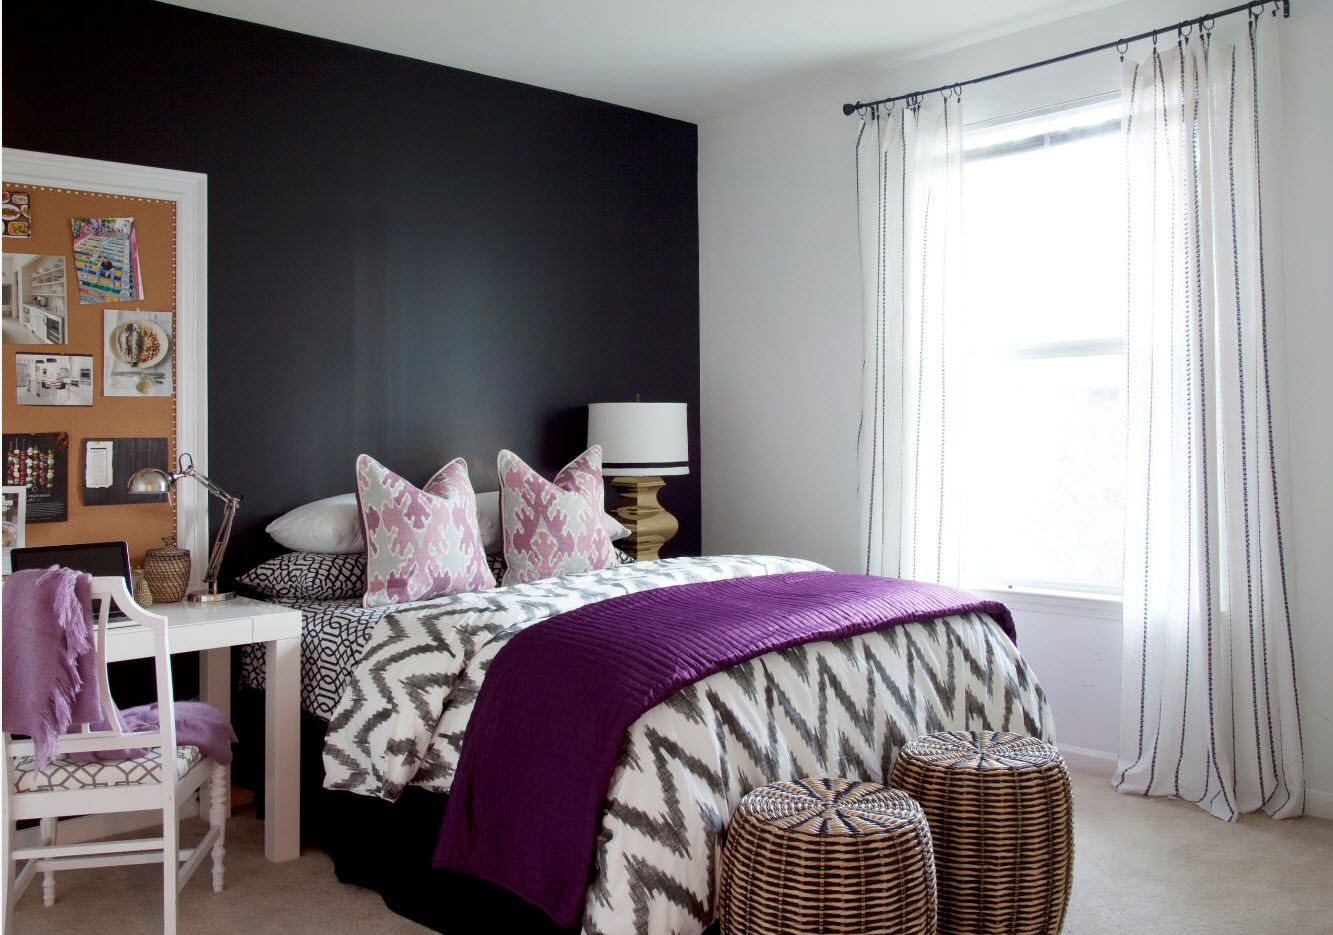 Totally black frosted accent wall in the peculiarly designed small bedroom with mix of styles and ideas looks juicy and accentual